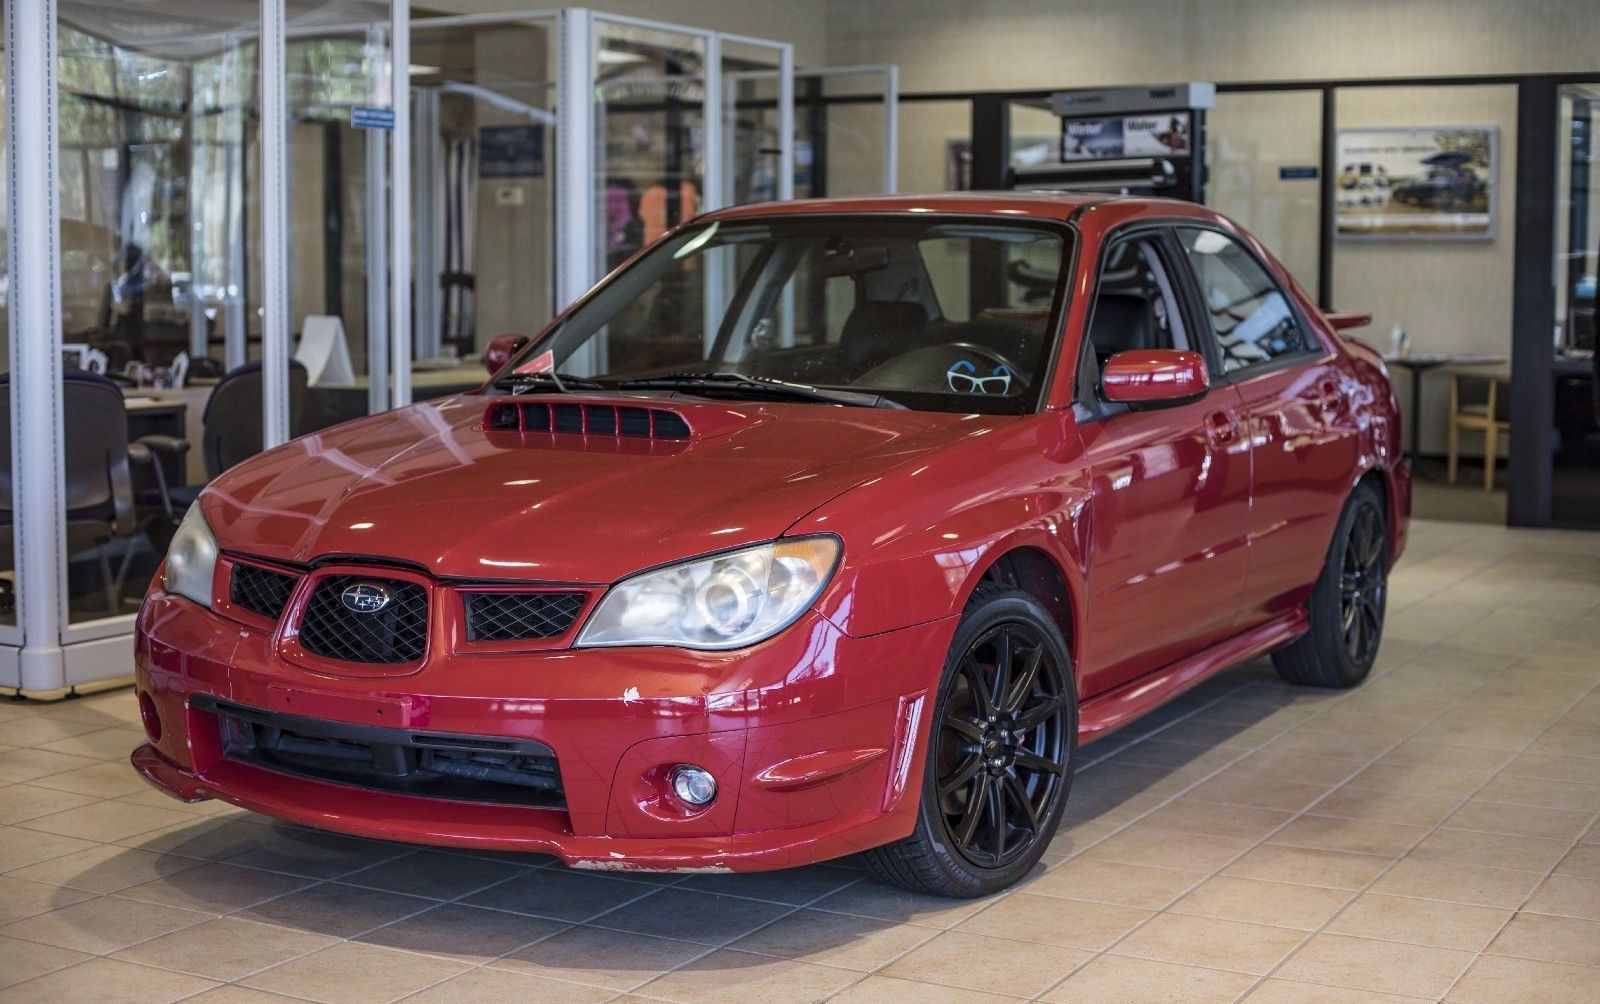 for sale 2006 subaru wrx from baby driver film rwd conversion performancedrive. Black Bedroom Furniture Sets. Home Design Ideas